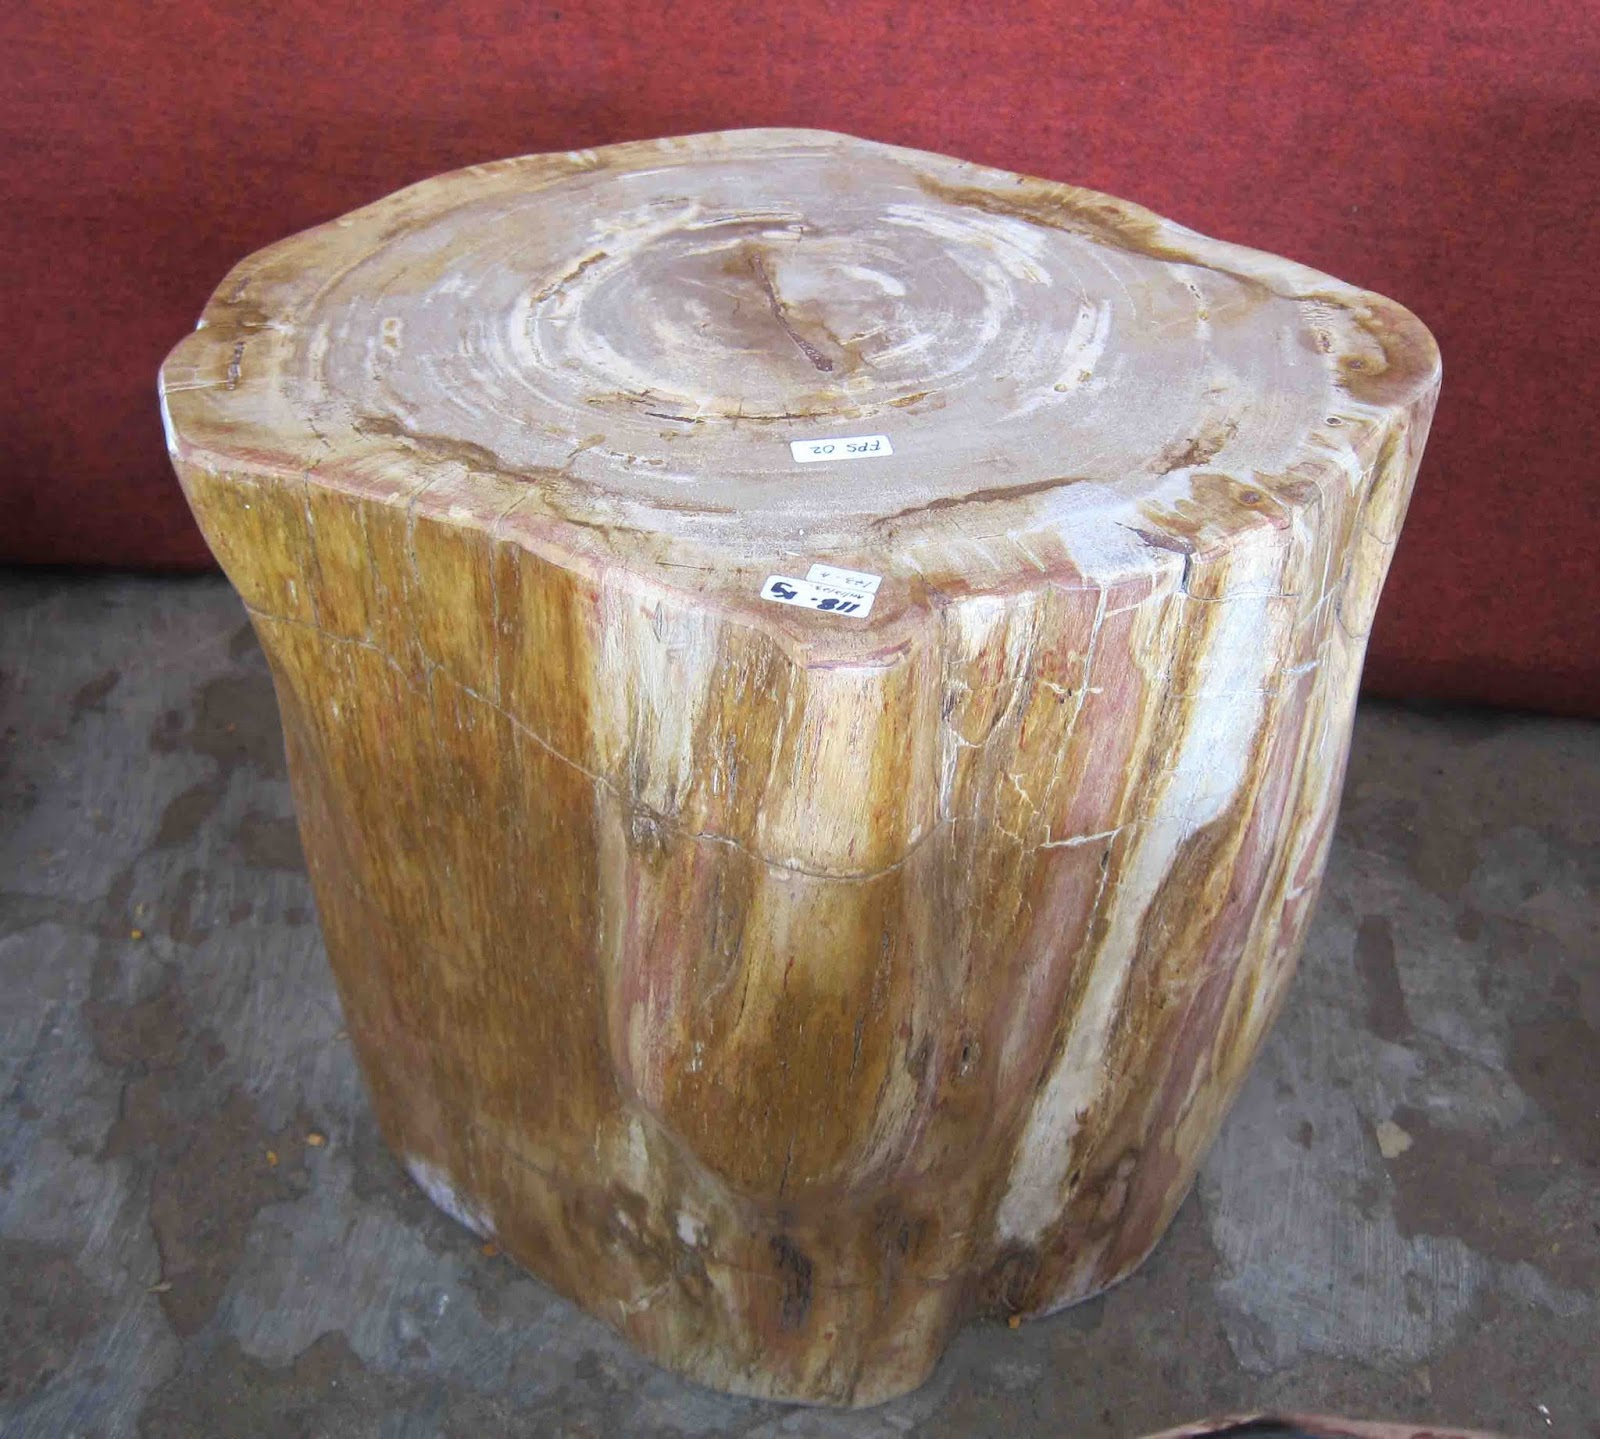 Petrified wood furniture for sale images for Petrified wood furniture for sale